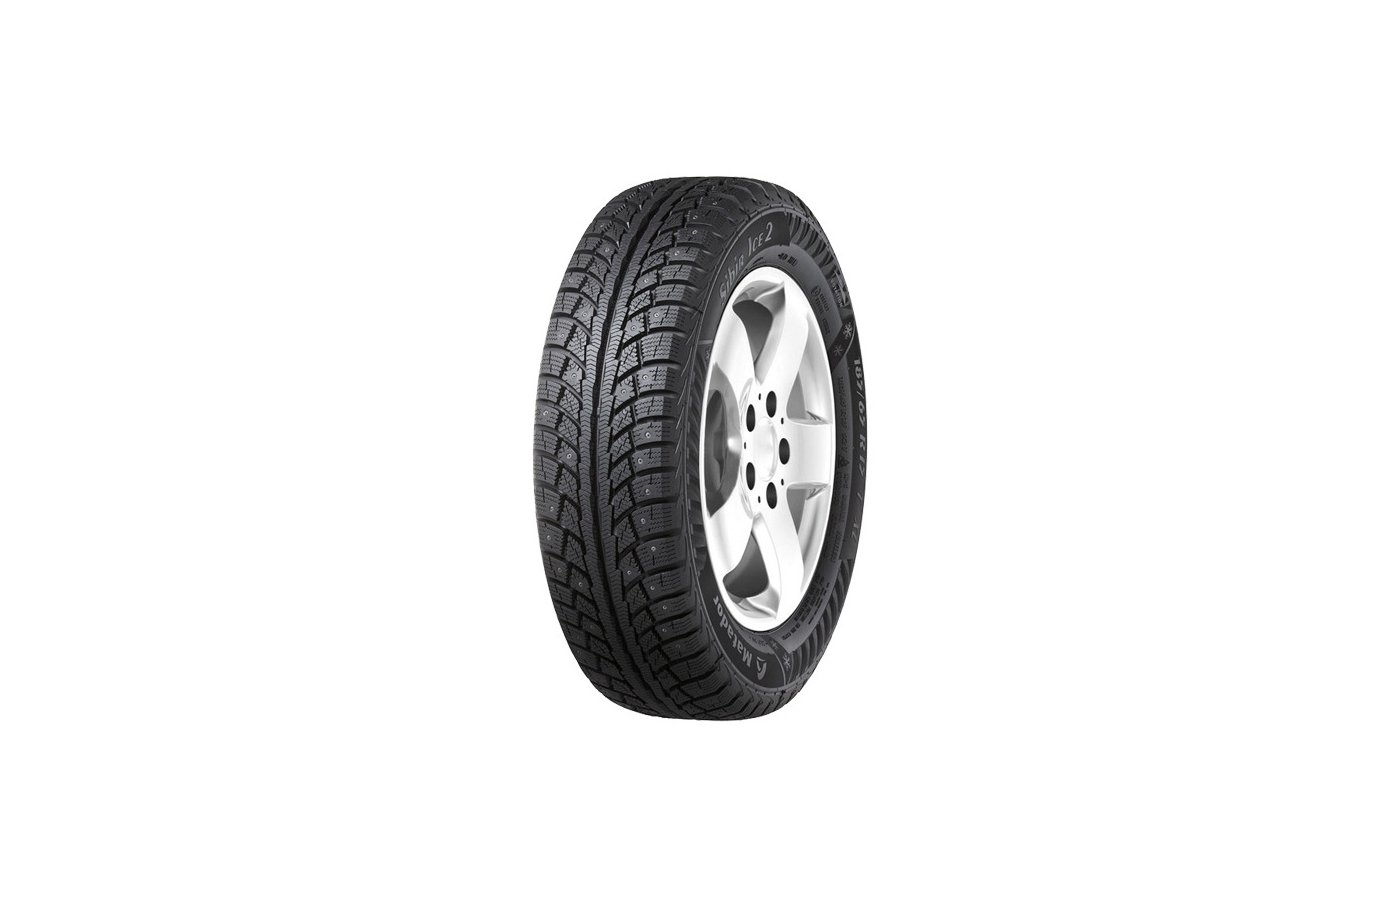 Шина Matador MP 30 Sibir Ice 2 205/70 R16 TL 97T шип